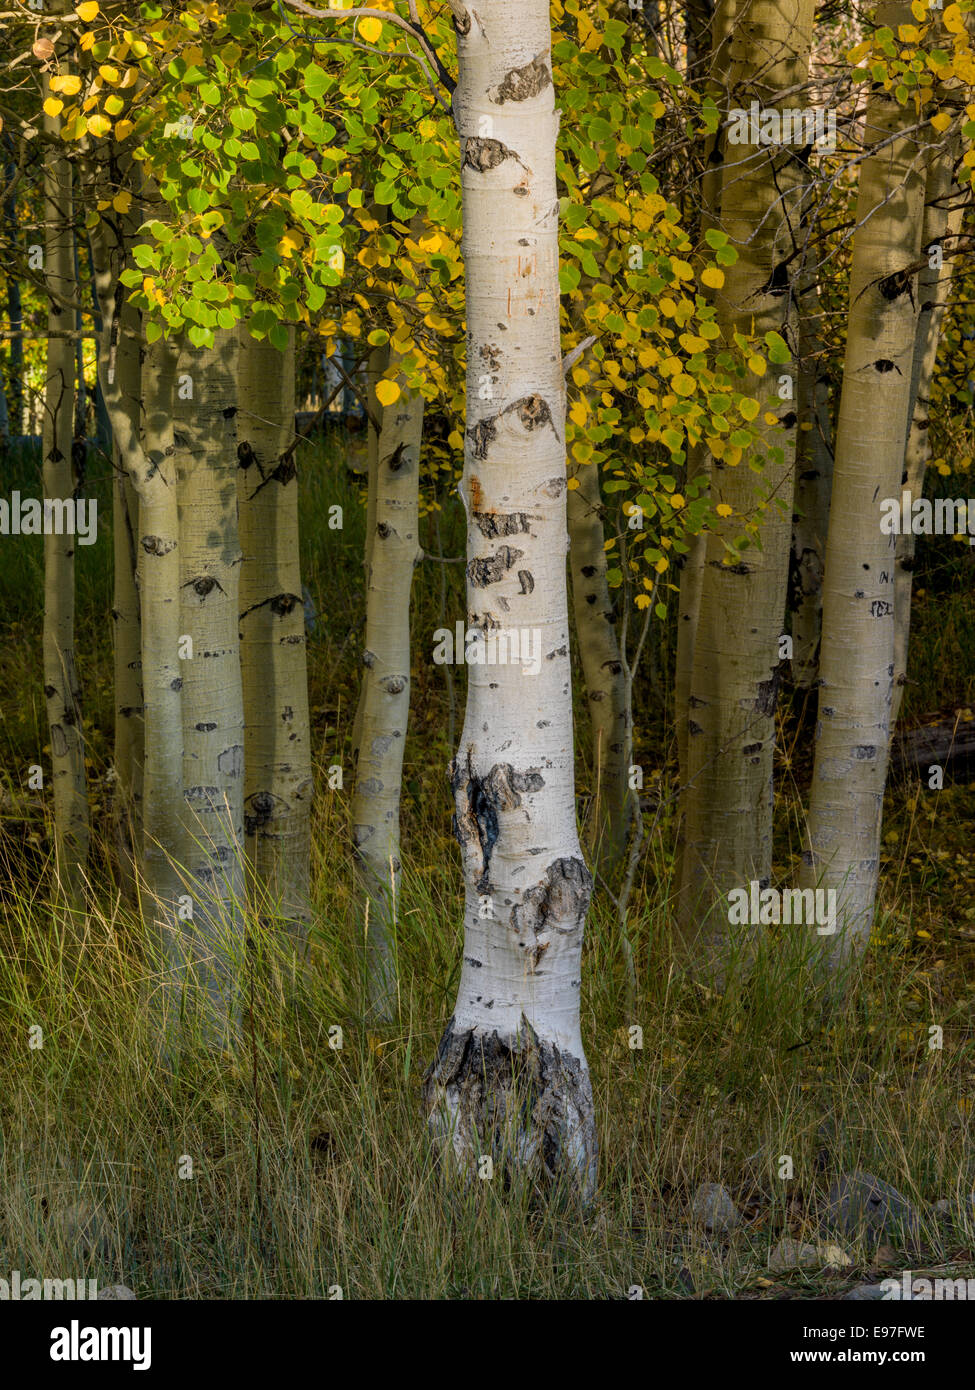 Aspen in Fall Foliage decorate the hill sides of the Boulder Mountain Range in Central Idaho. - Stock Image